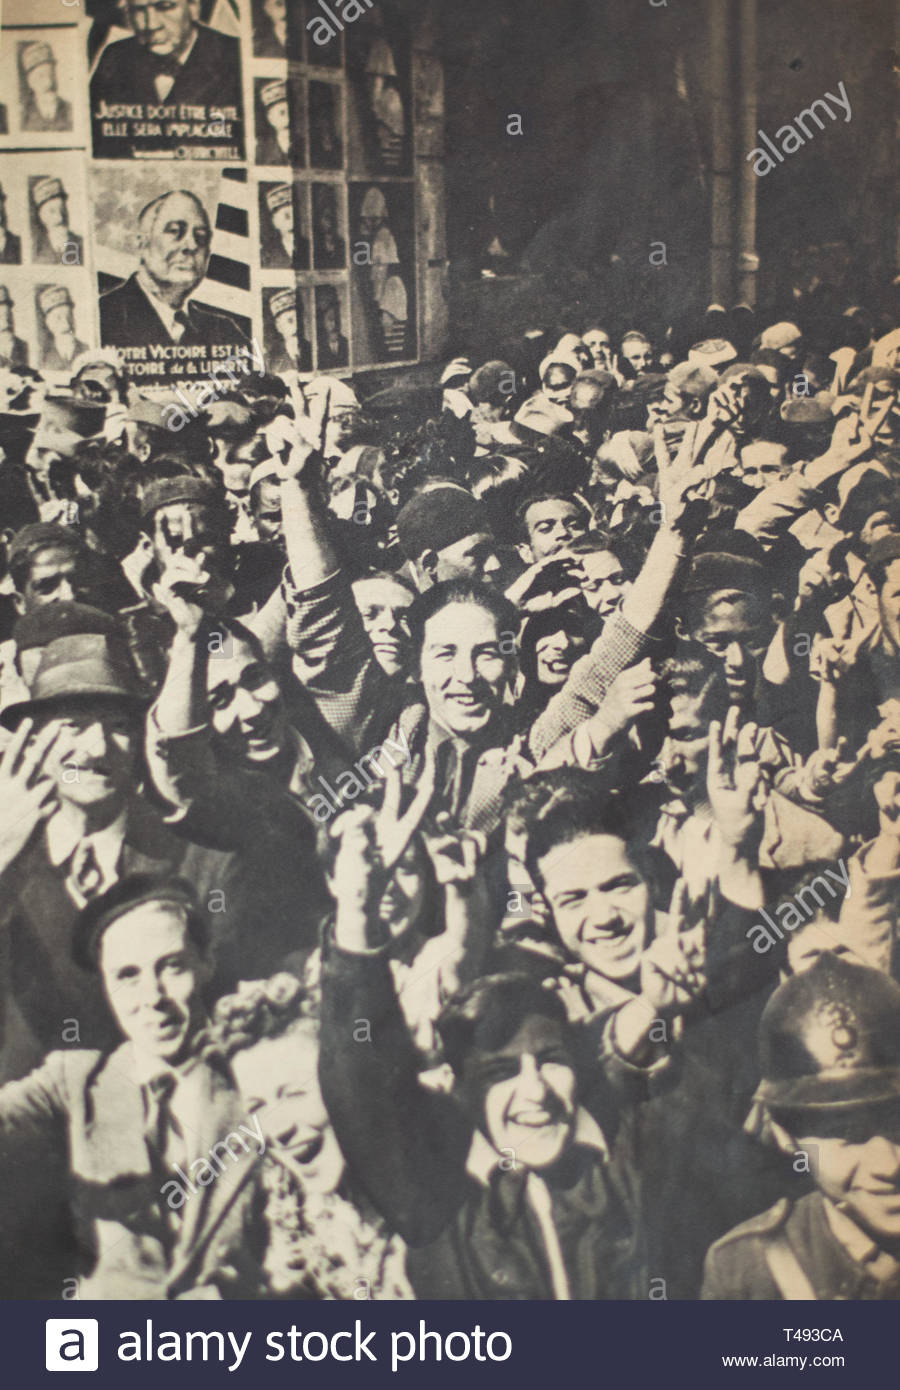 Tunisian people cheer as war is over after two and a half years. Tunisia, WW2, 1943. - Stock Image